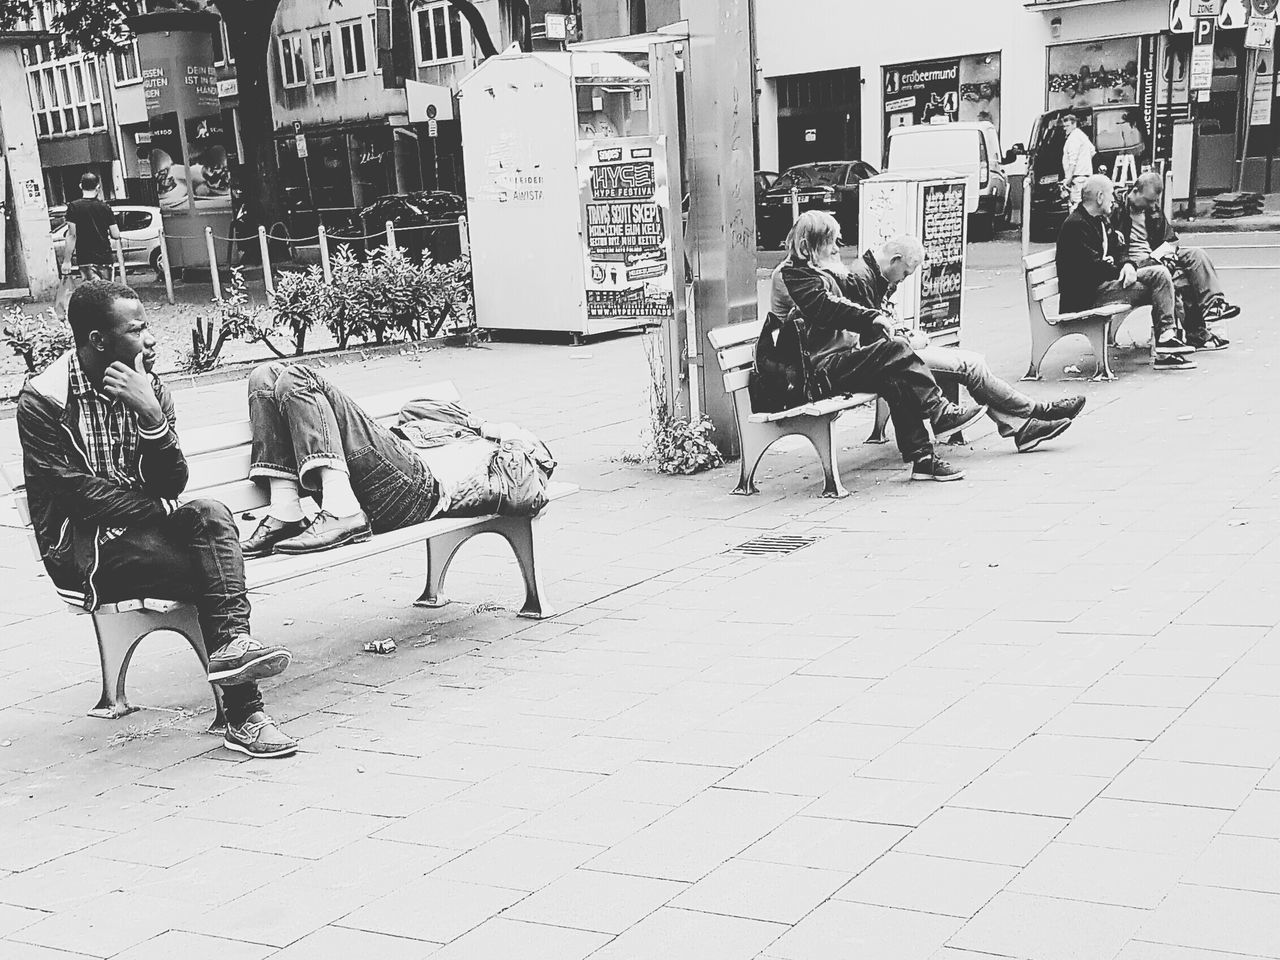 Deutschland, 10 Uhr City Street City Life City View  Street Photography People Homeless Drunk Relaxing Chilling Showcase June Talking Photo Talking Pictures Street Life Citylife My City Portrait Drunk Friends People Of EyeEm People On The Street Streetphoto GalaxyS7Edge Wonderful Life